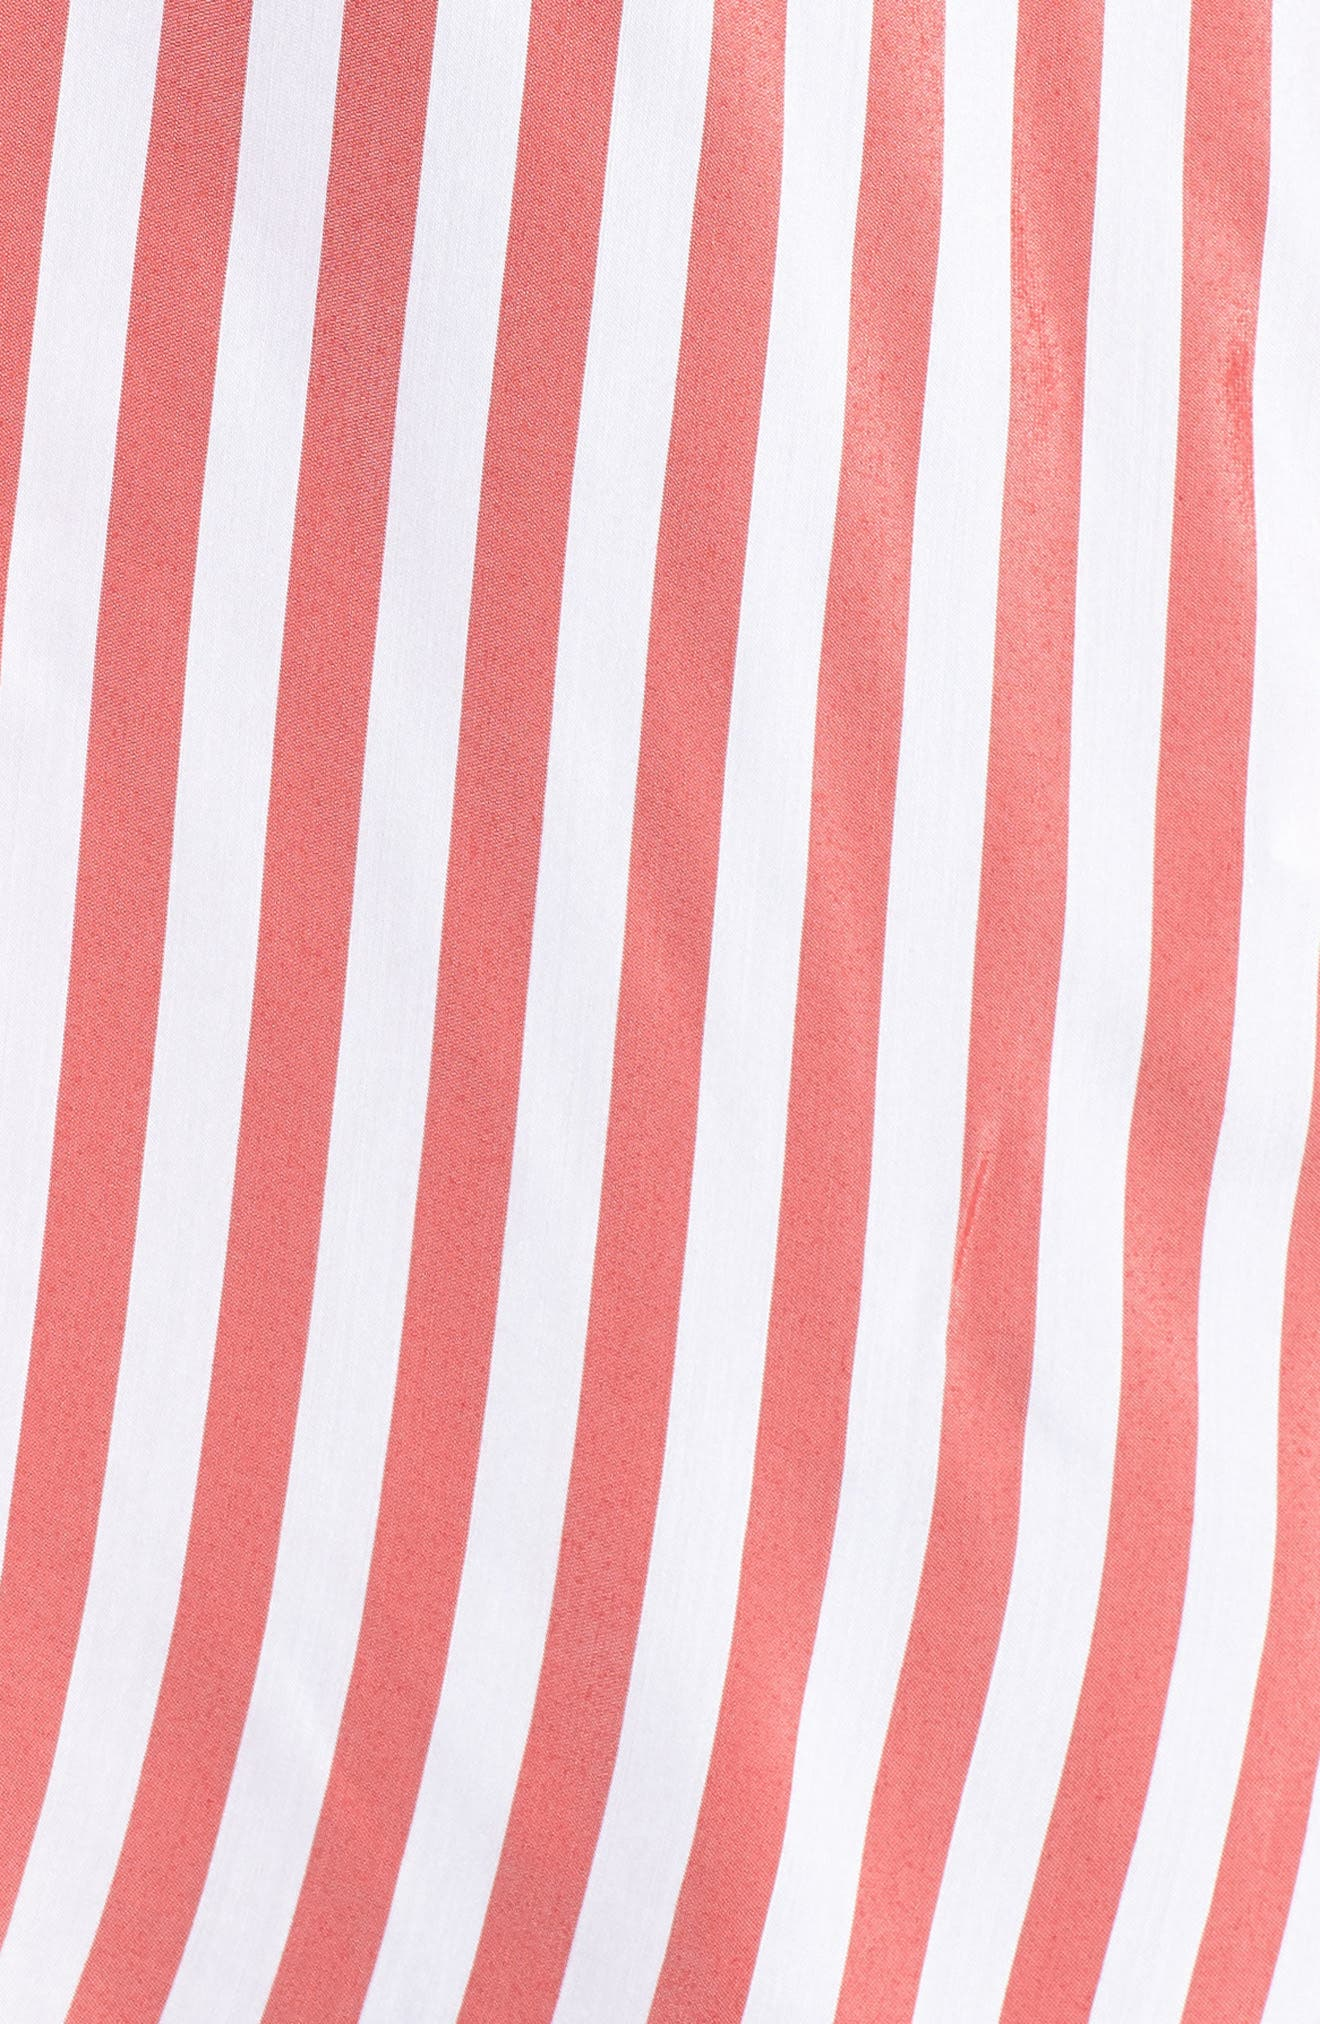 Stripe Blouse,                             Alternate thumbnail 6, color,                             Red/ White Stripe